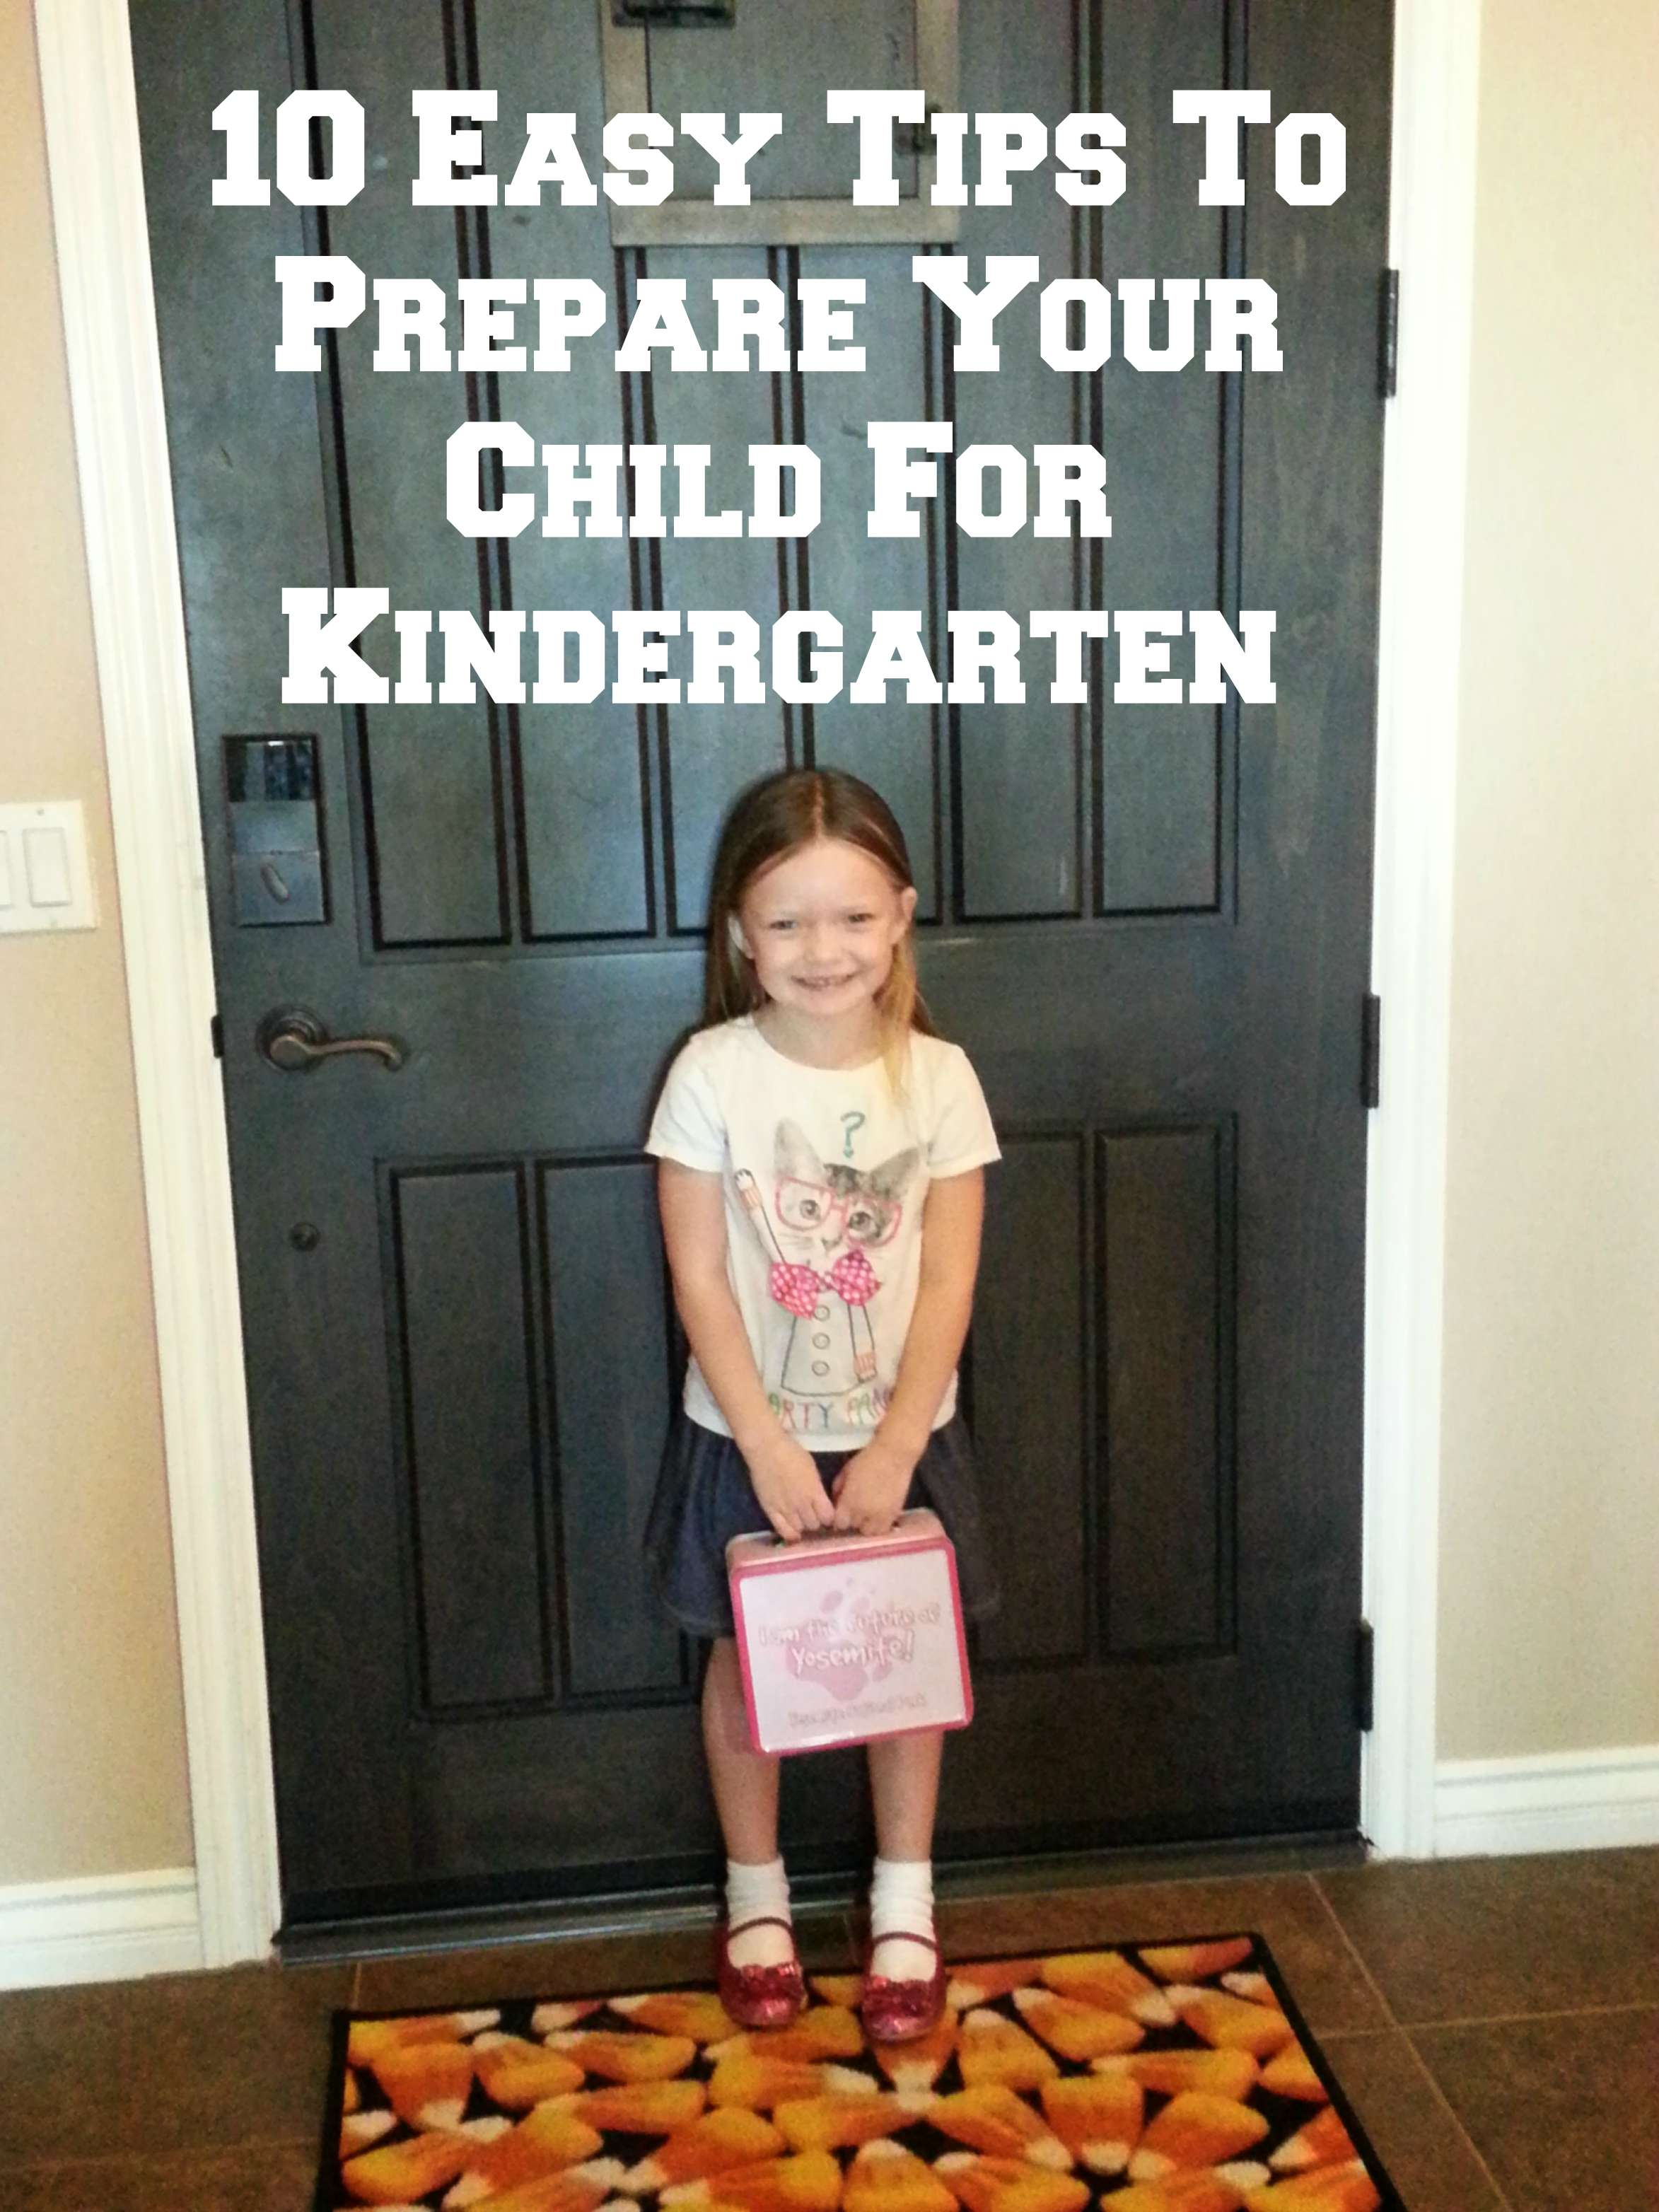 10 Easy Tips To Prepare Your Child For Kindergarten